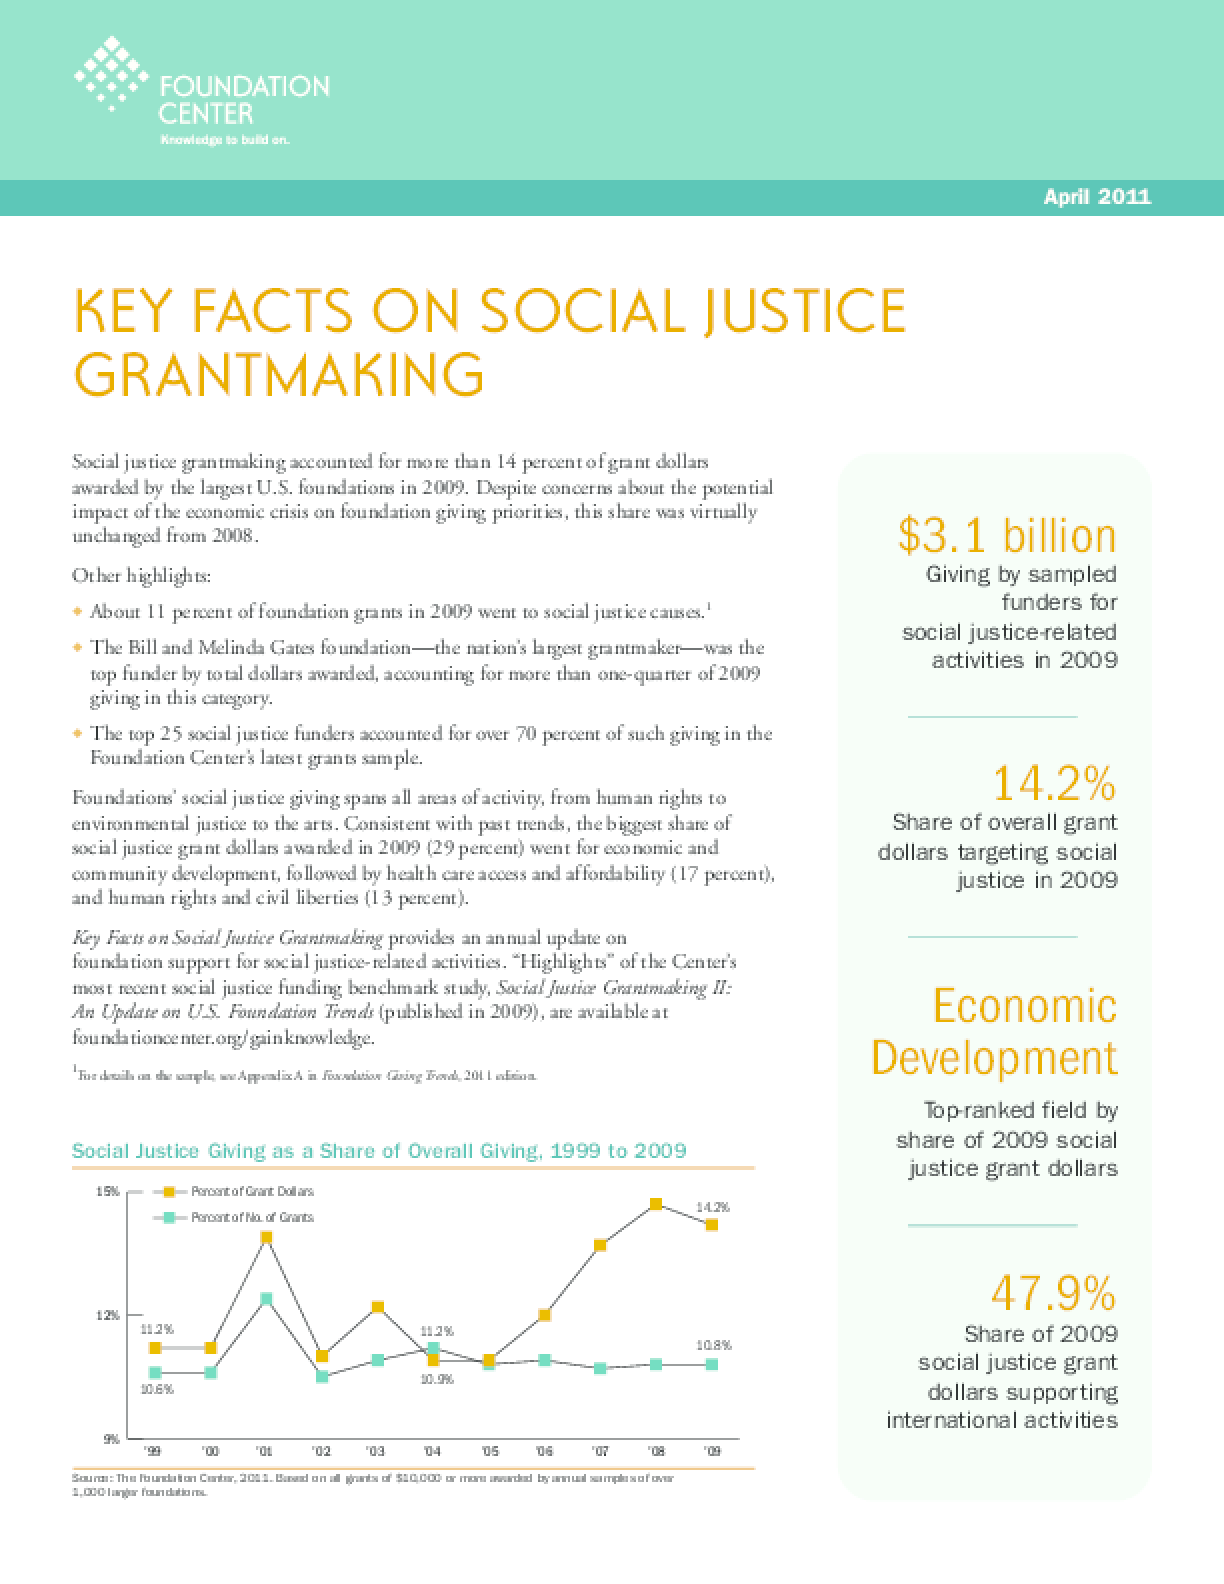 Key Facts on Social Justice Grantmaking 2011